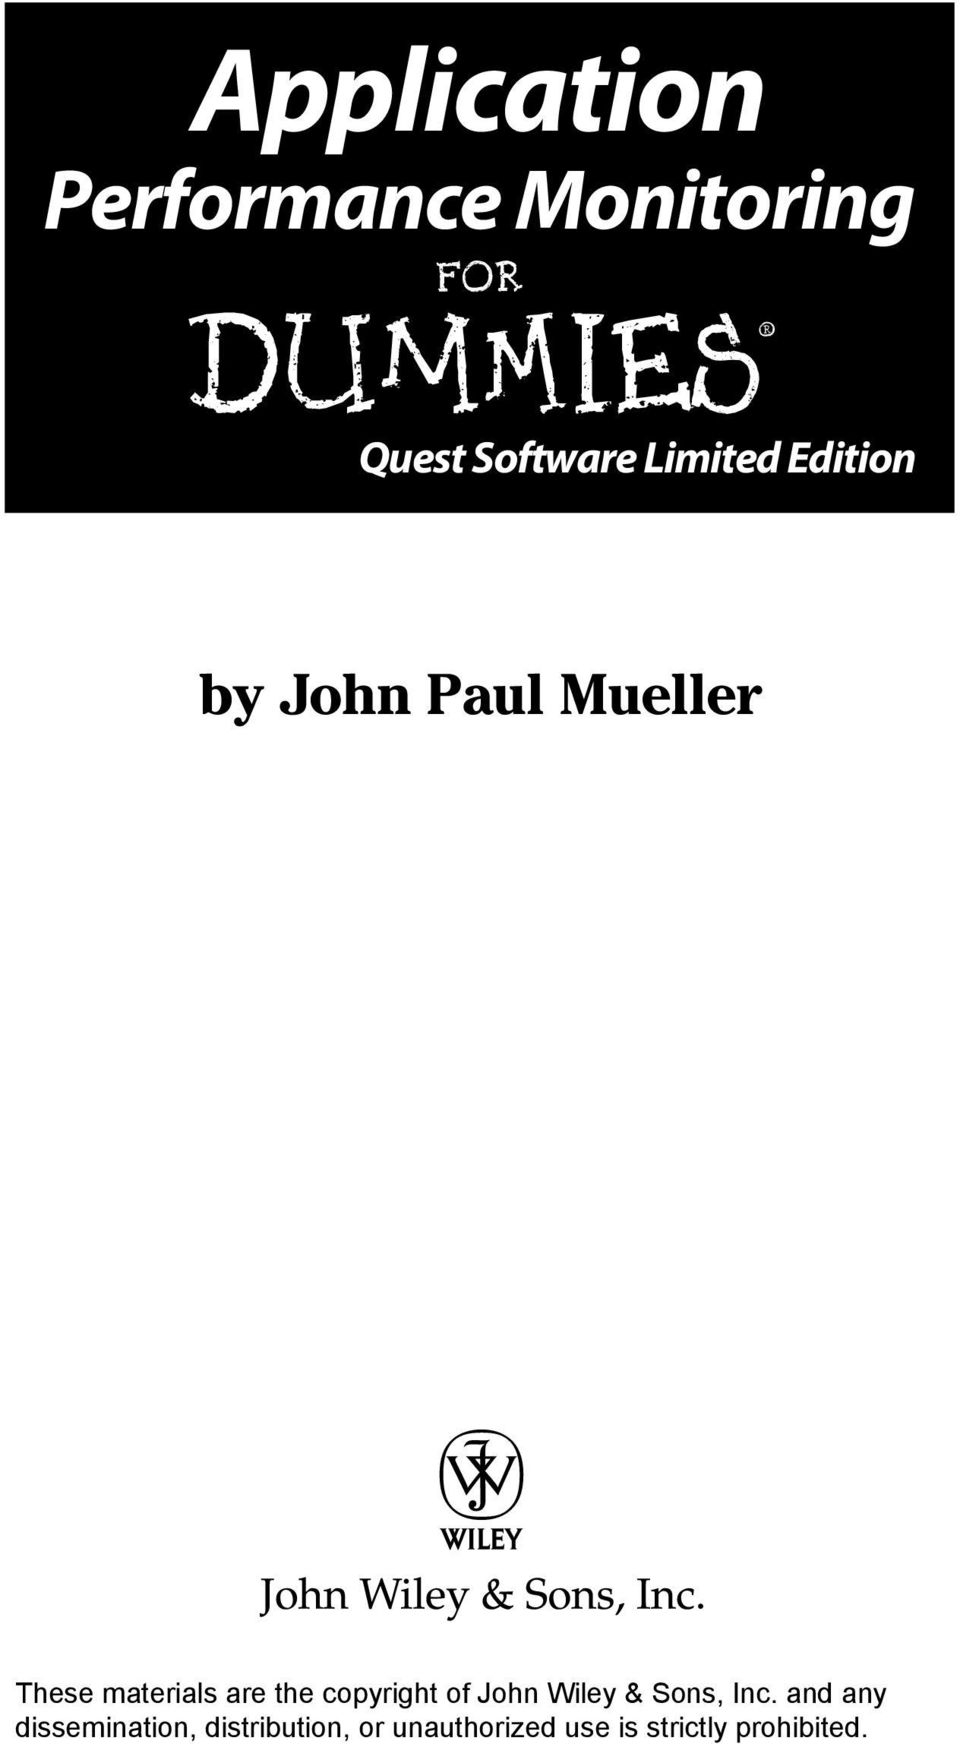 Quest Software Limited